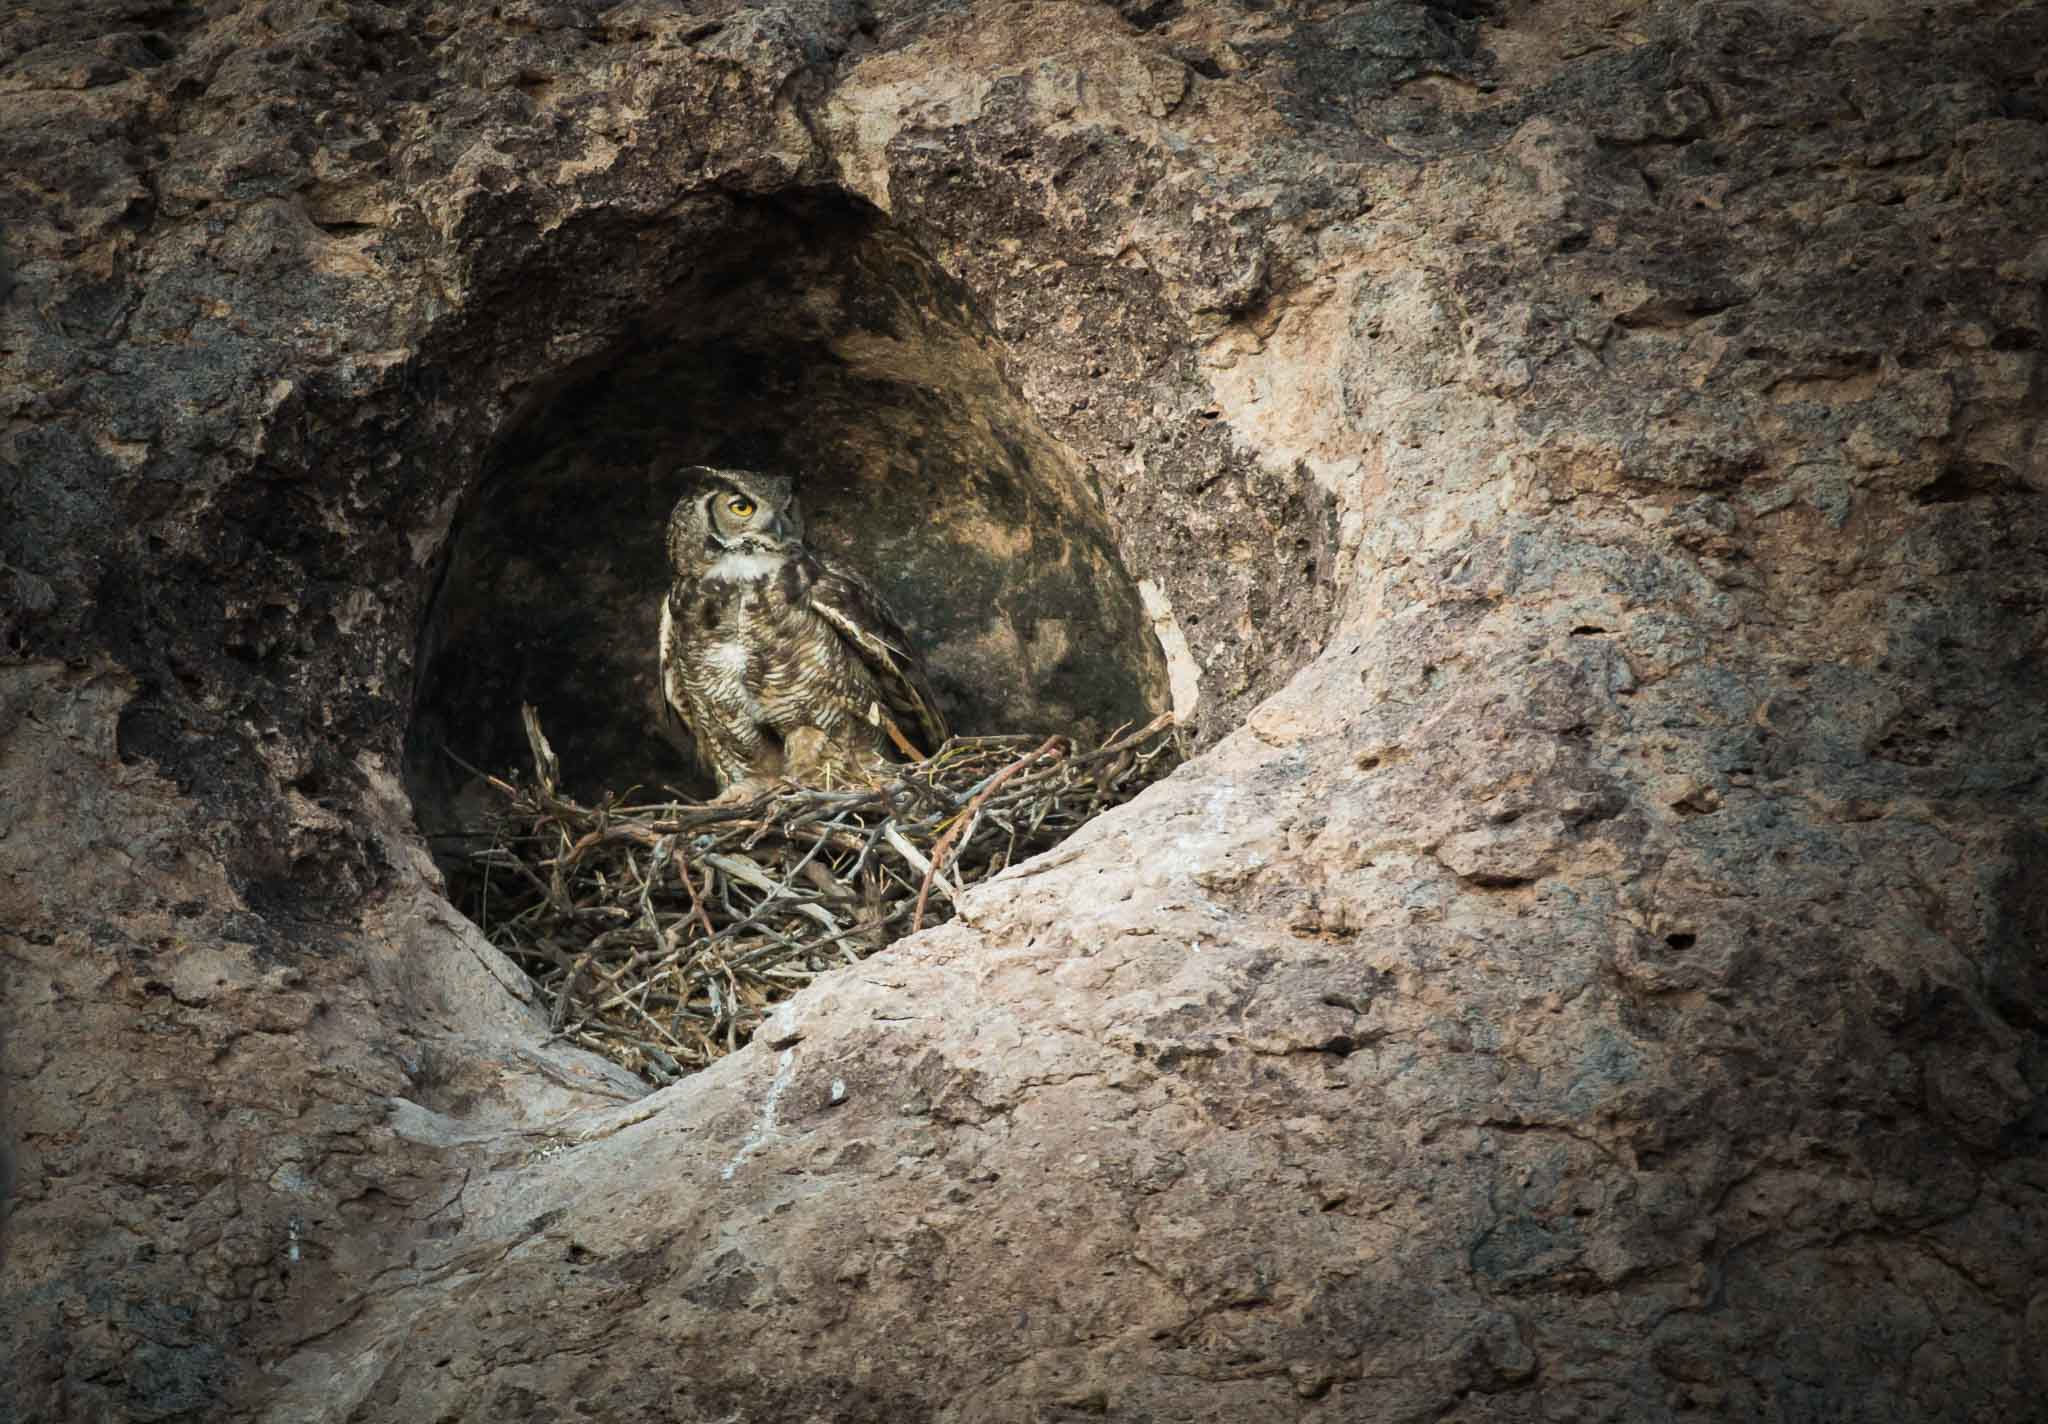 Great Horned Owl on nest in rock, City of Rocks State Park, Faywood NM, April 11, 2016